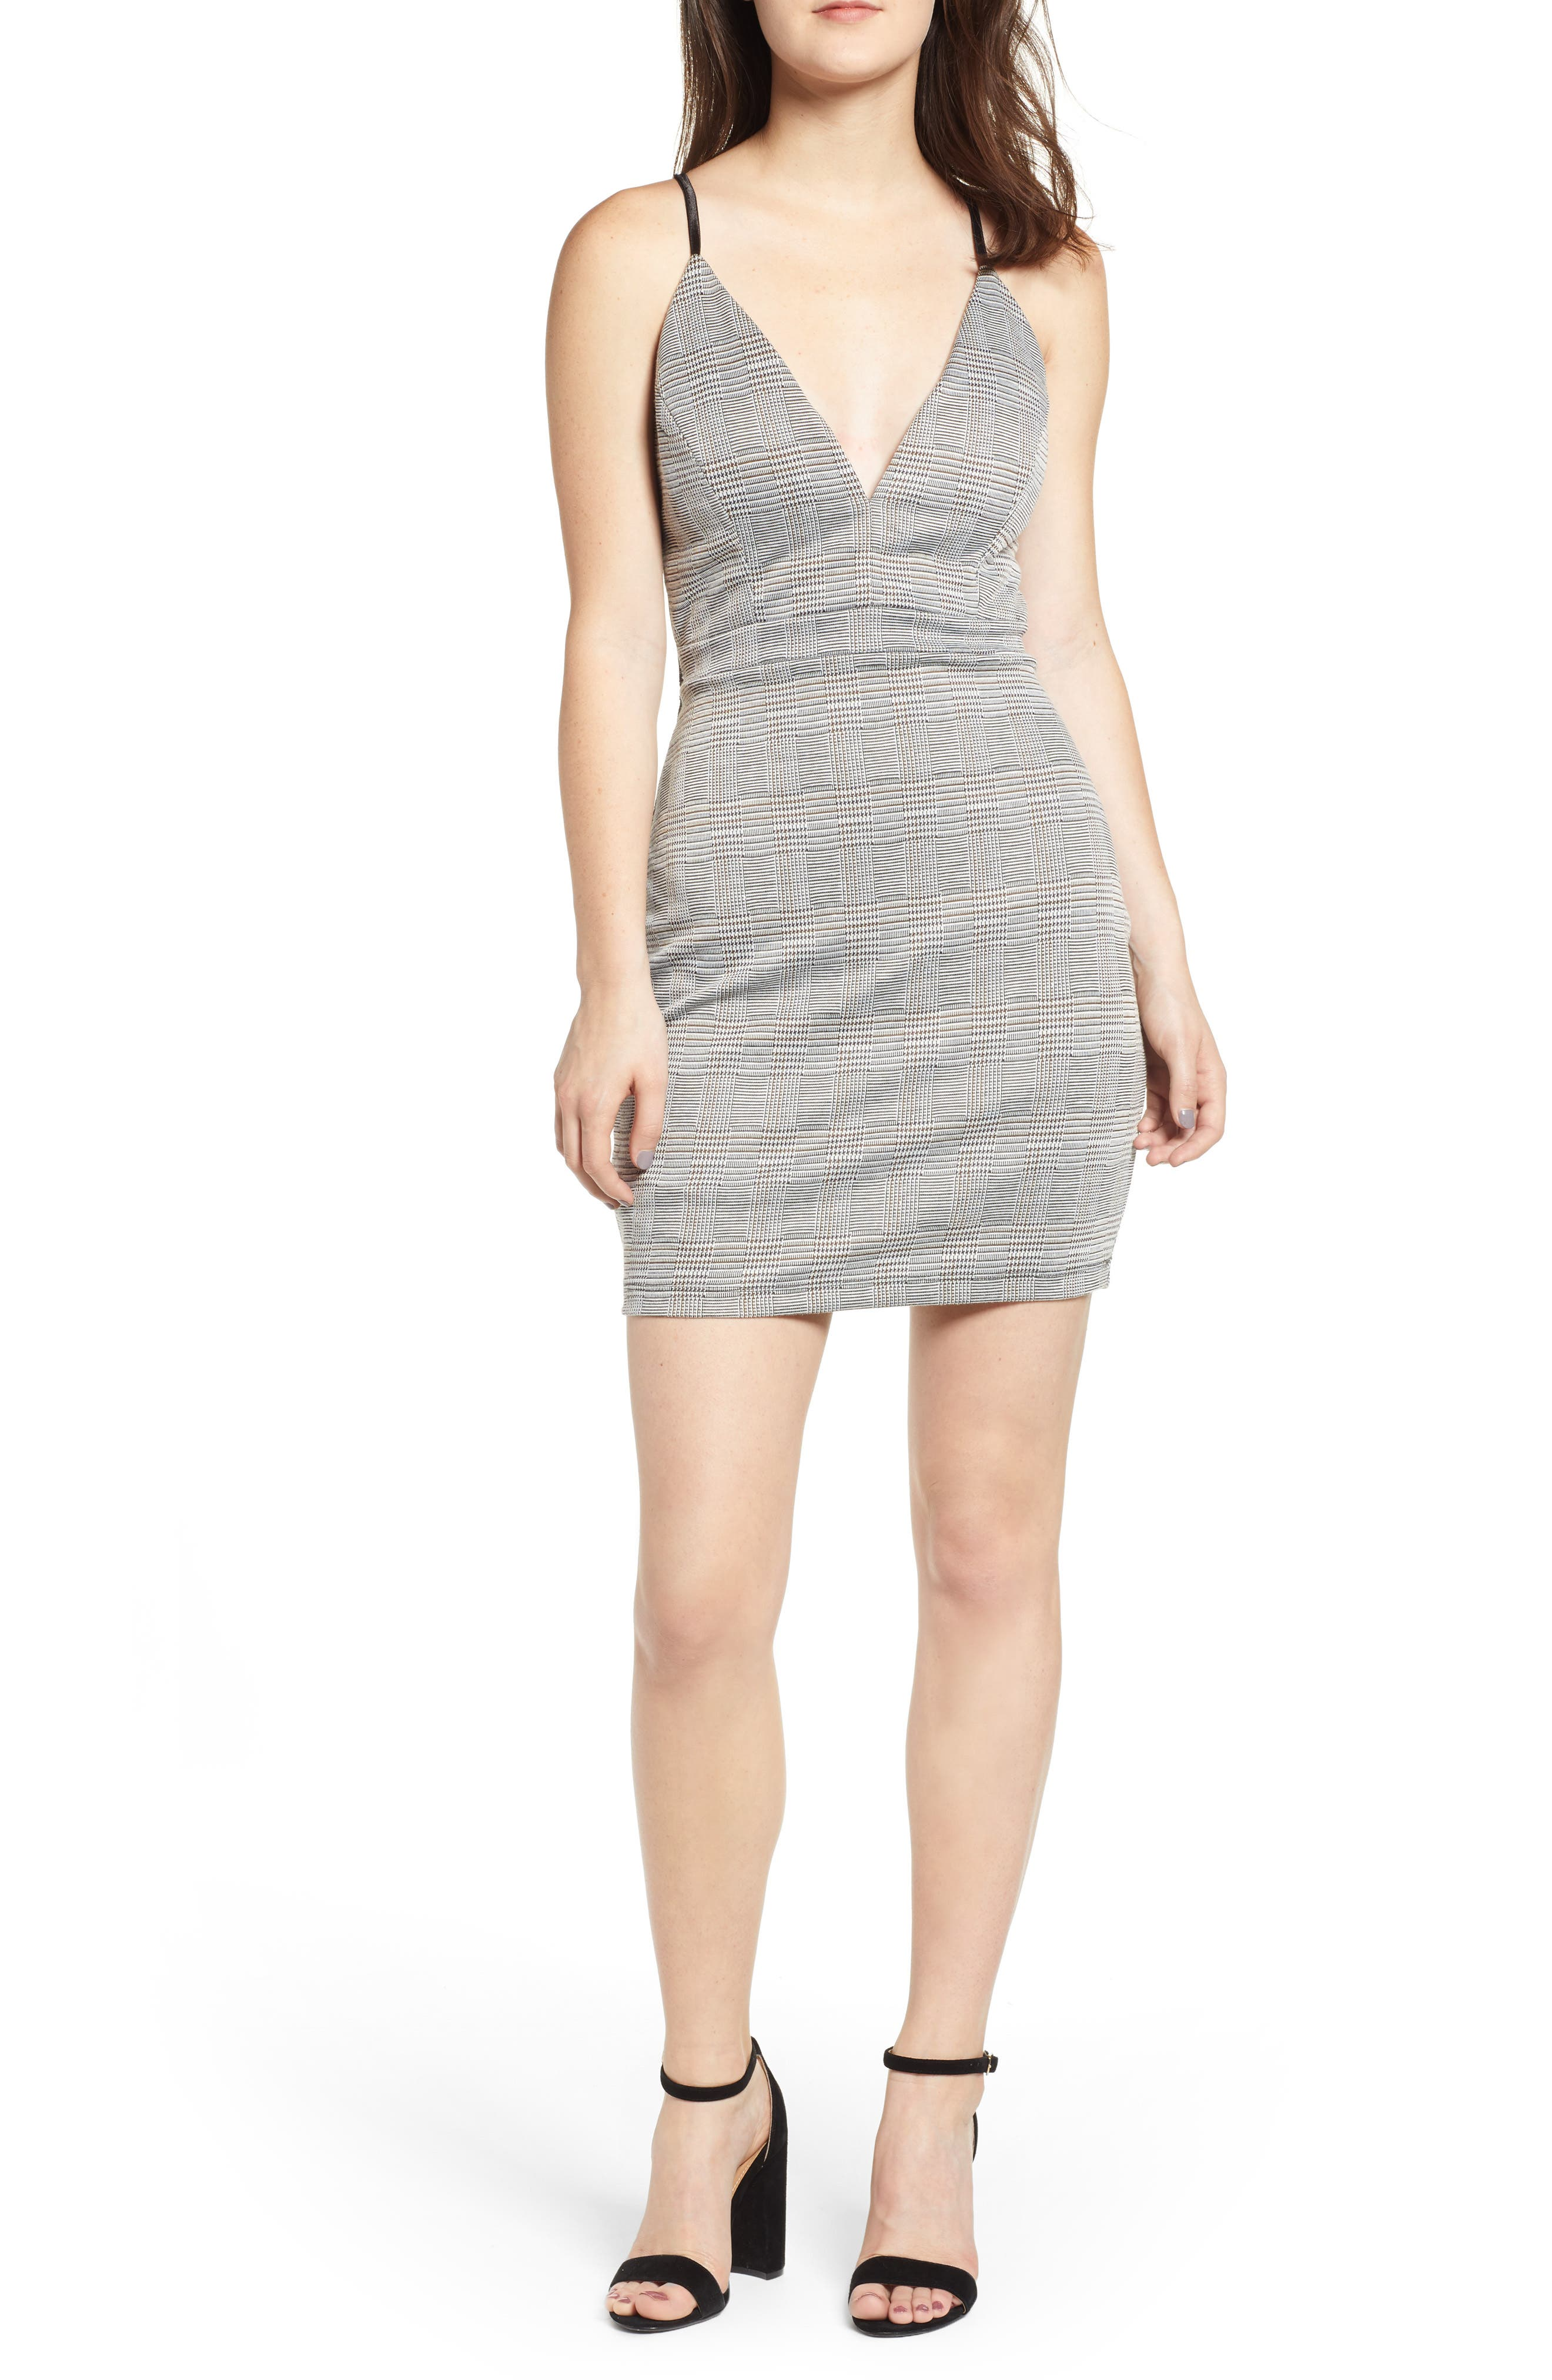 LOVE, NICKIE LEW Body-Con Dress, Main, color, 001